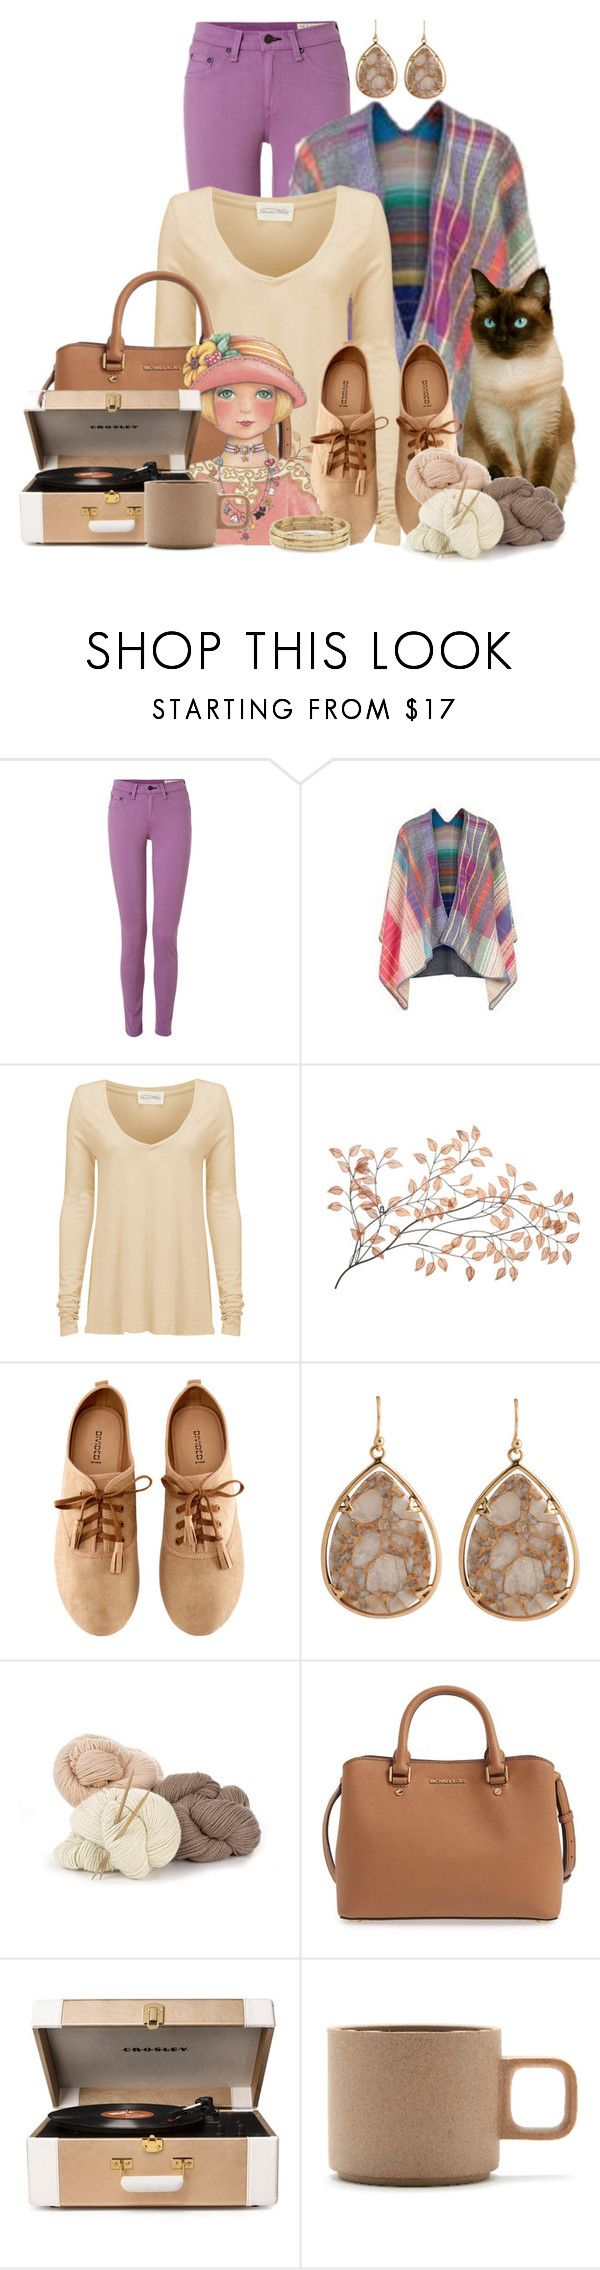 """""""Untitled #99"""" by lilarose111 ❤ liked on Polyvore featuring rag & bone, Missoni, American Vintage, H&M, Barse, MICHAEL Michael Kors, Crosley Radio & Furniture, Hasami and Chico's"""